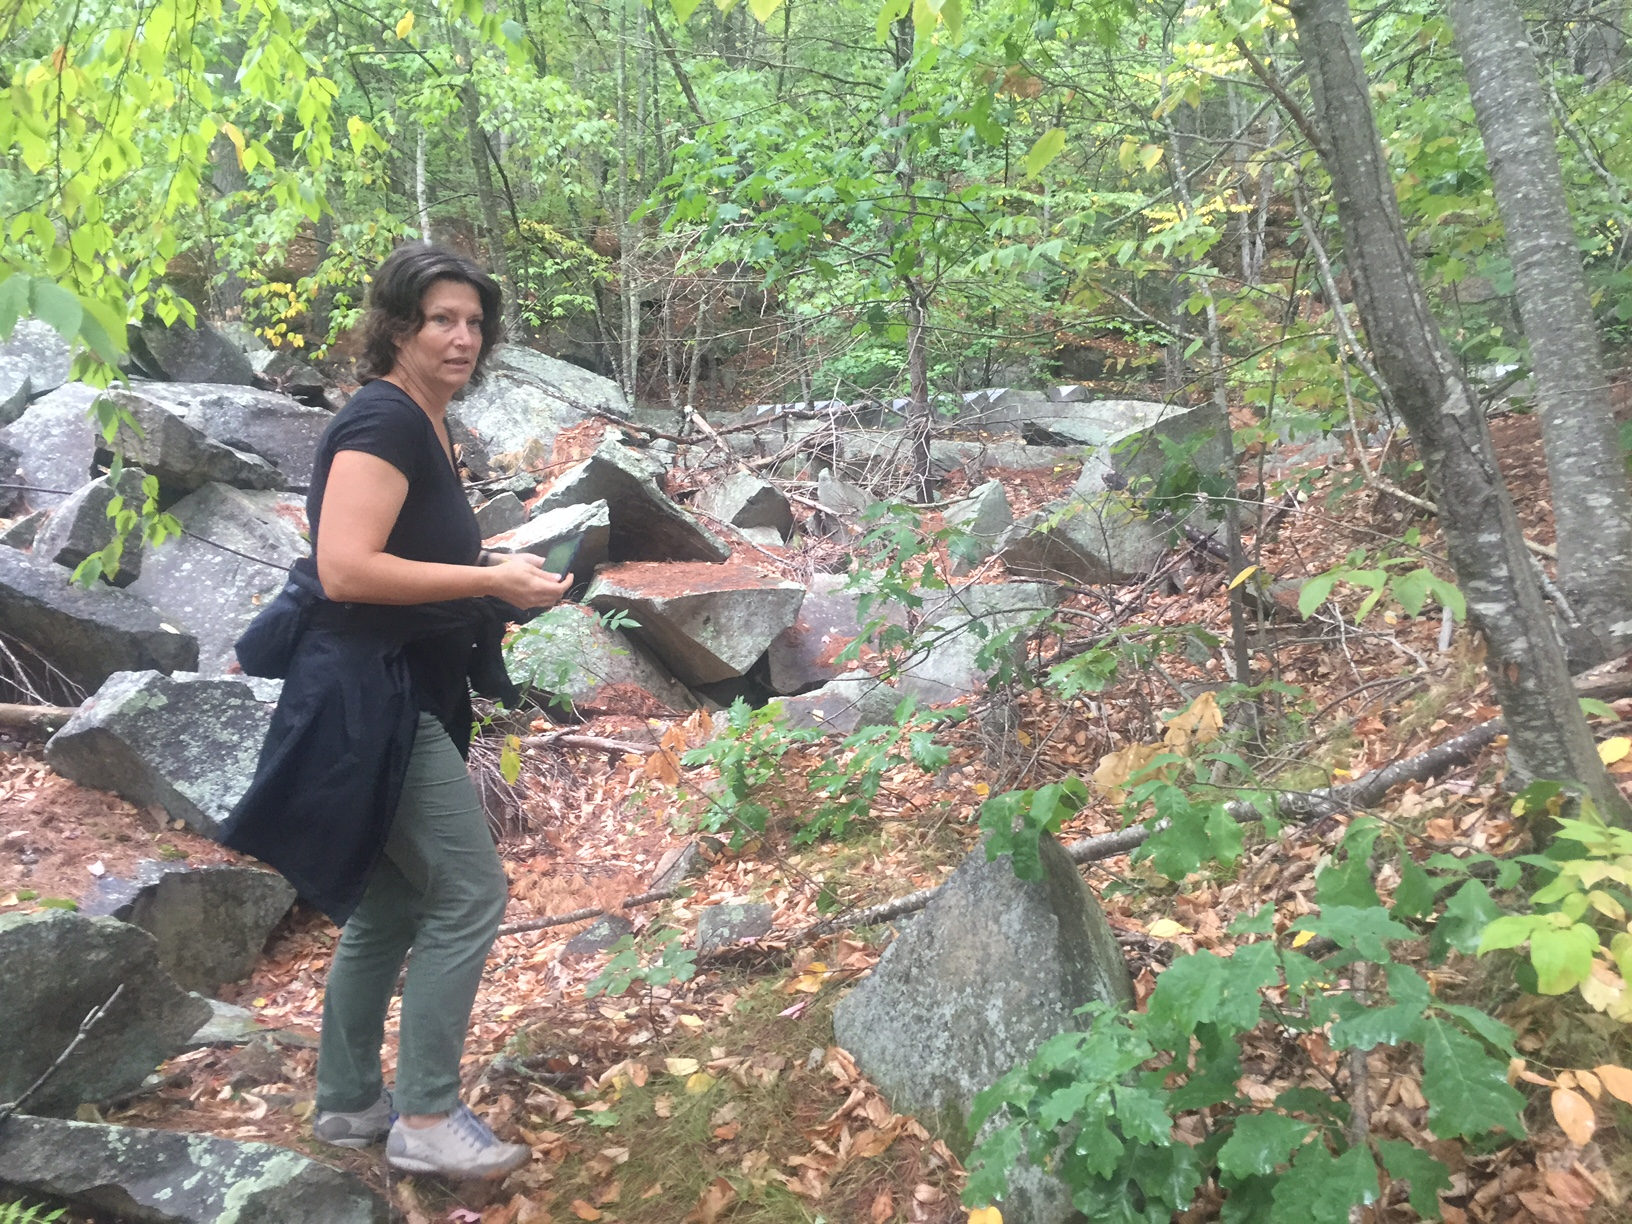 Participant, Dominika Griesgraber is hard at work locating the first half of her large granite sculpture